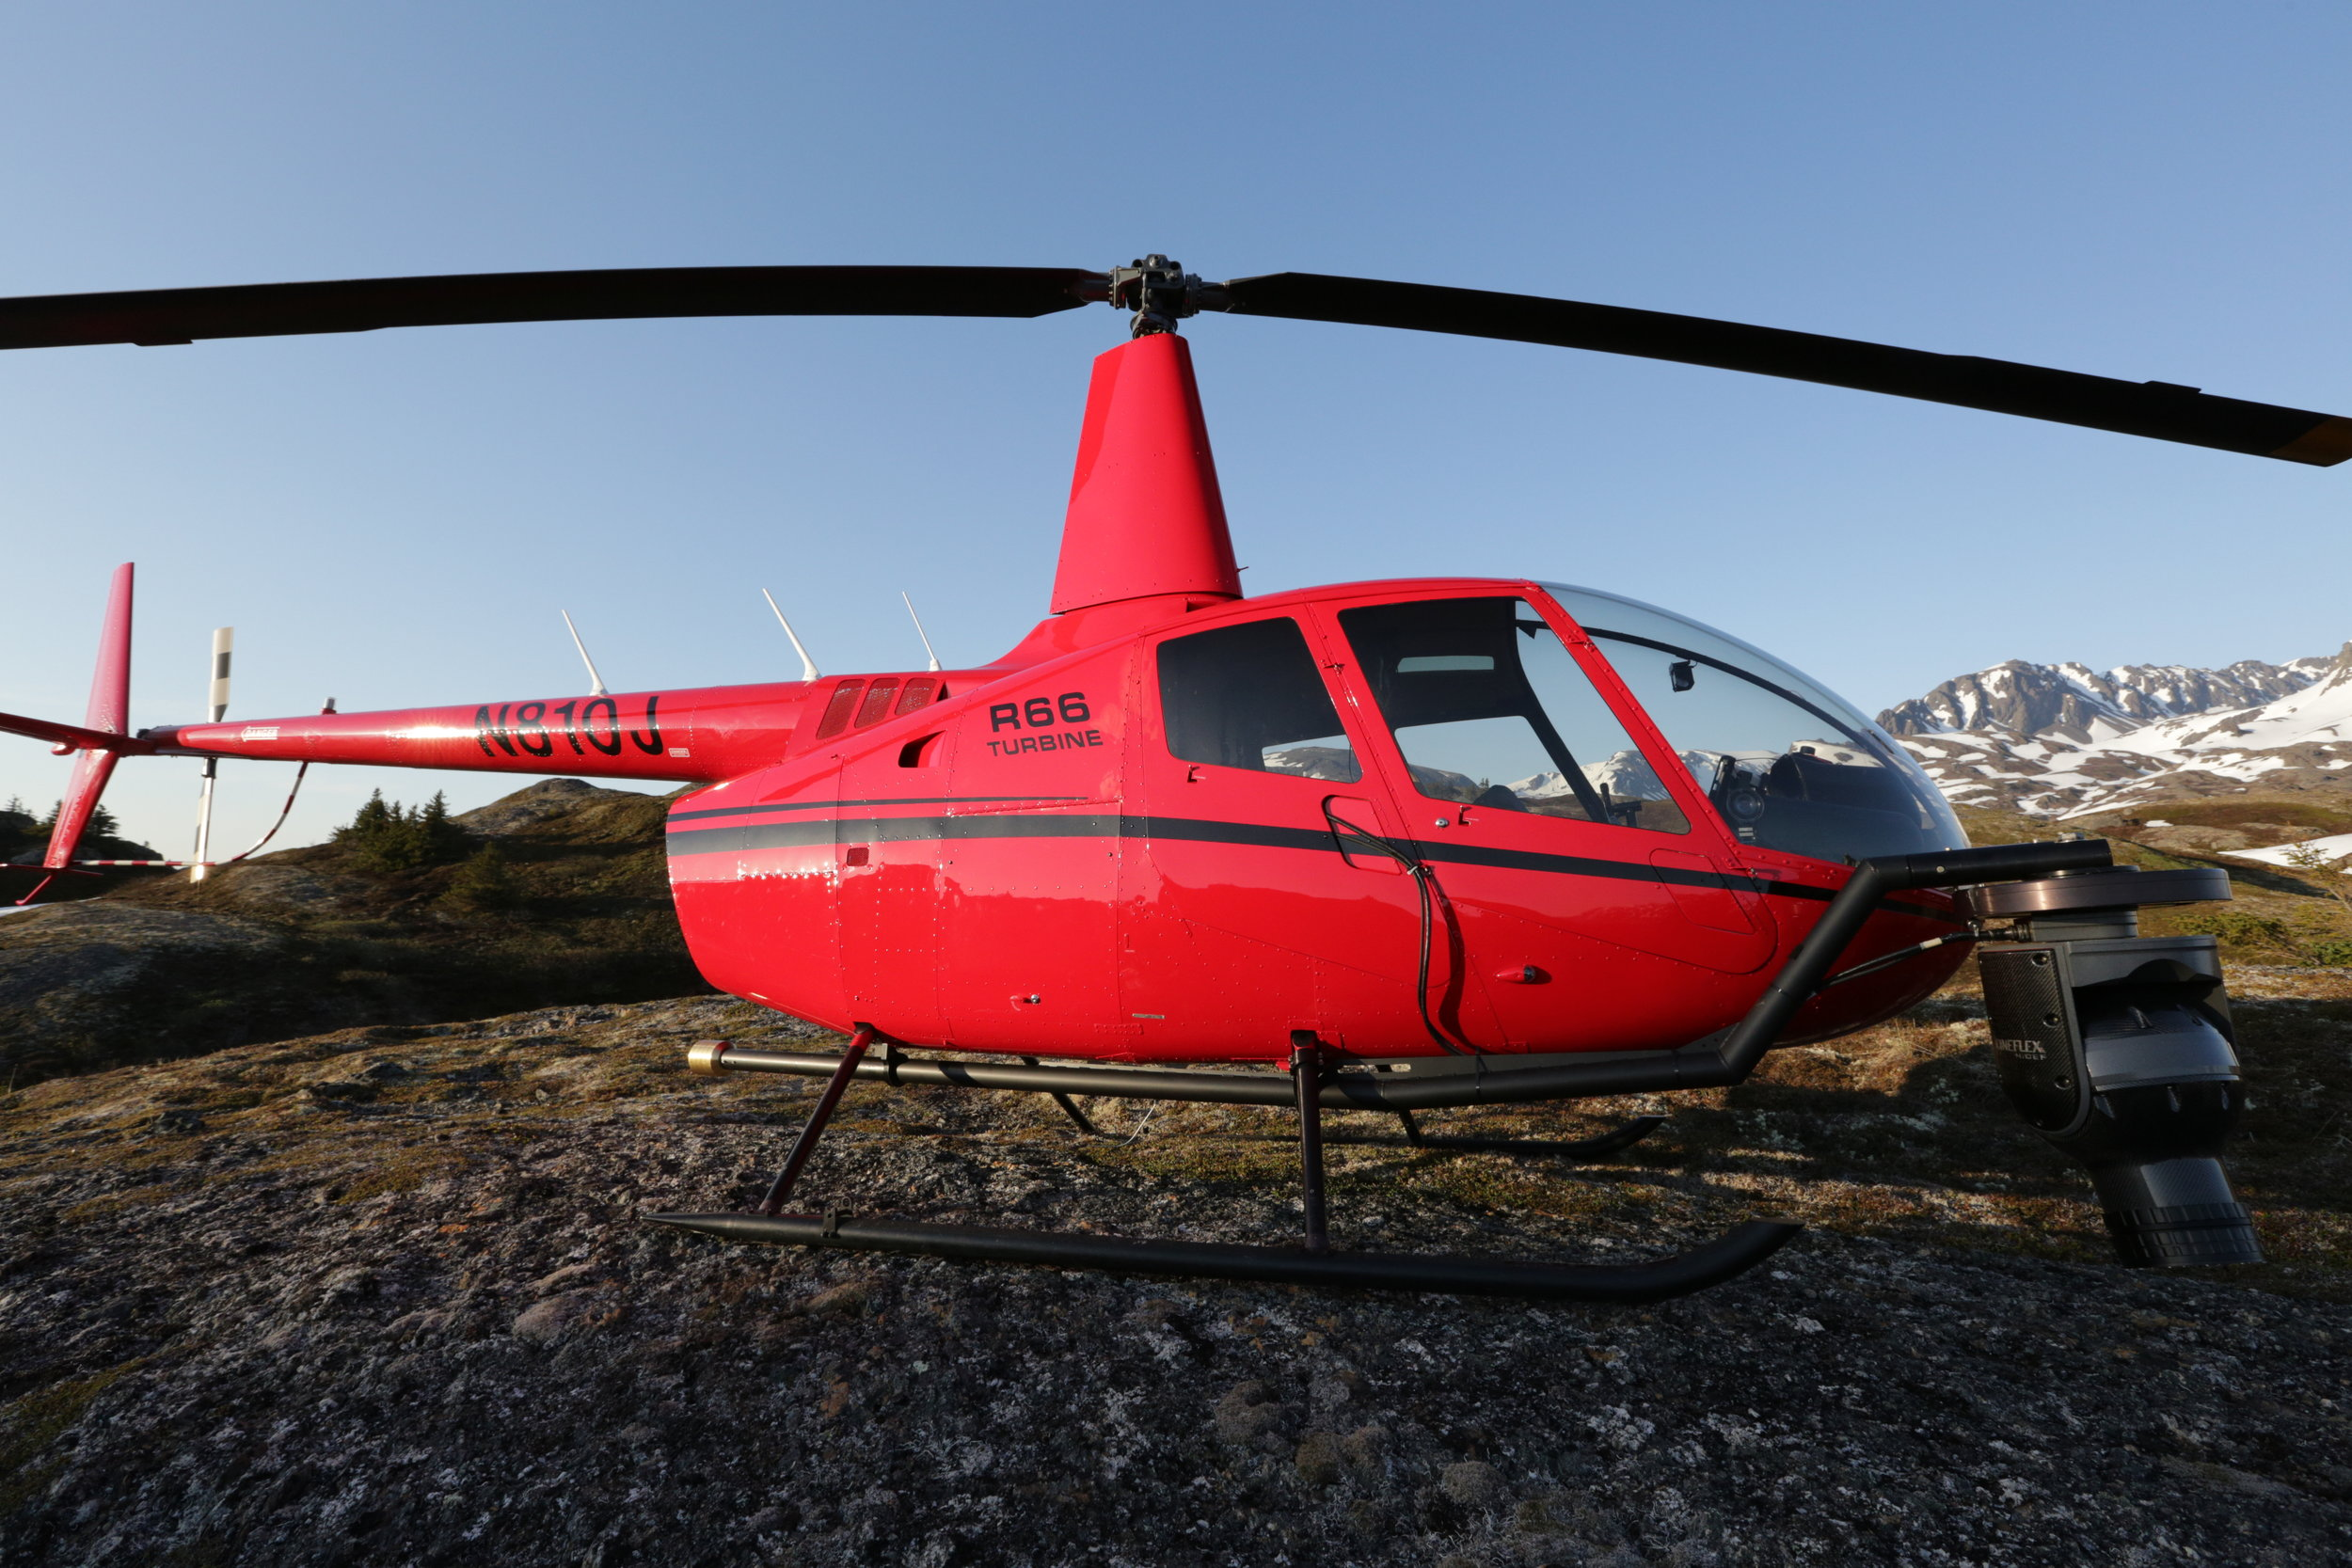 R66 Helicopter for aerial video capture -- Zatzworks Aerial Video